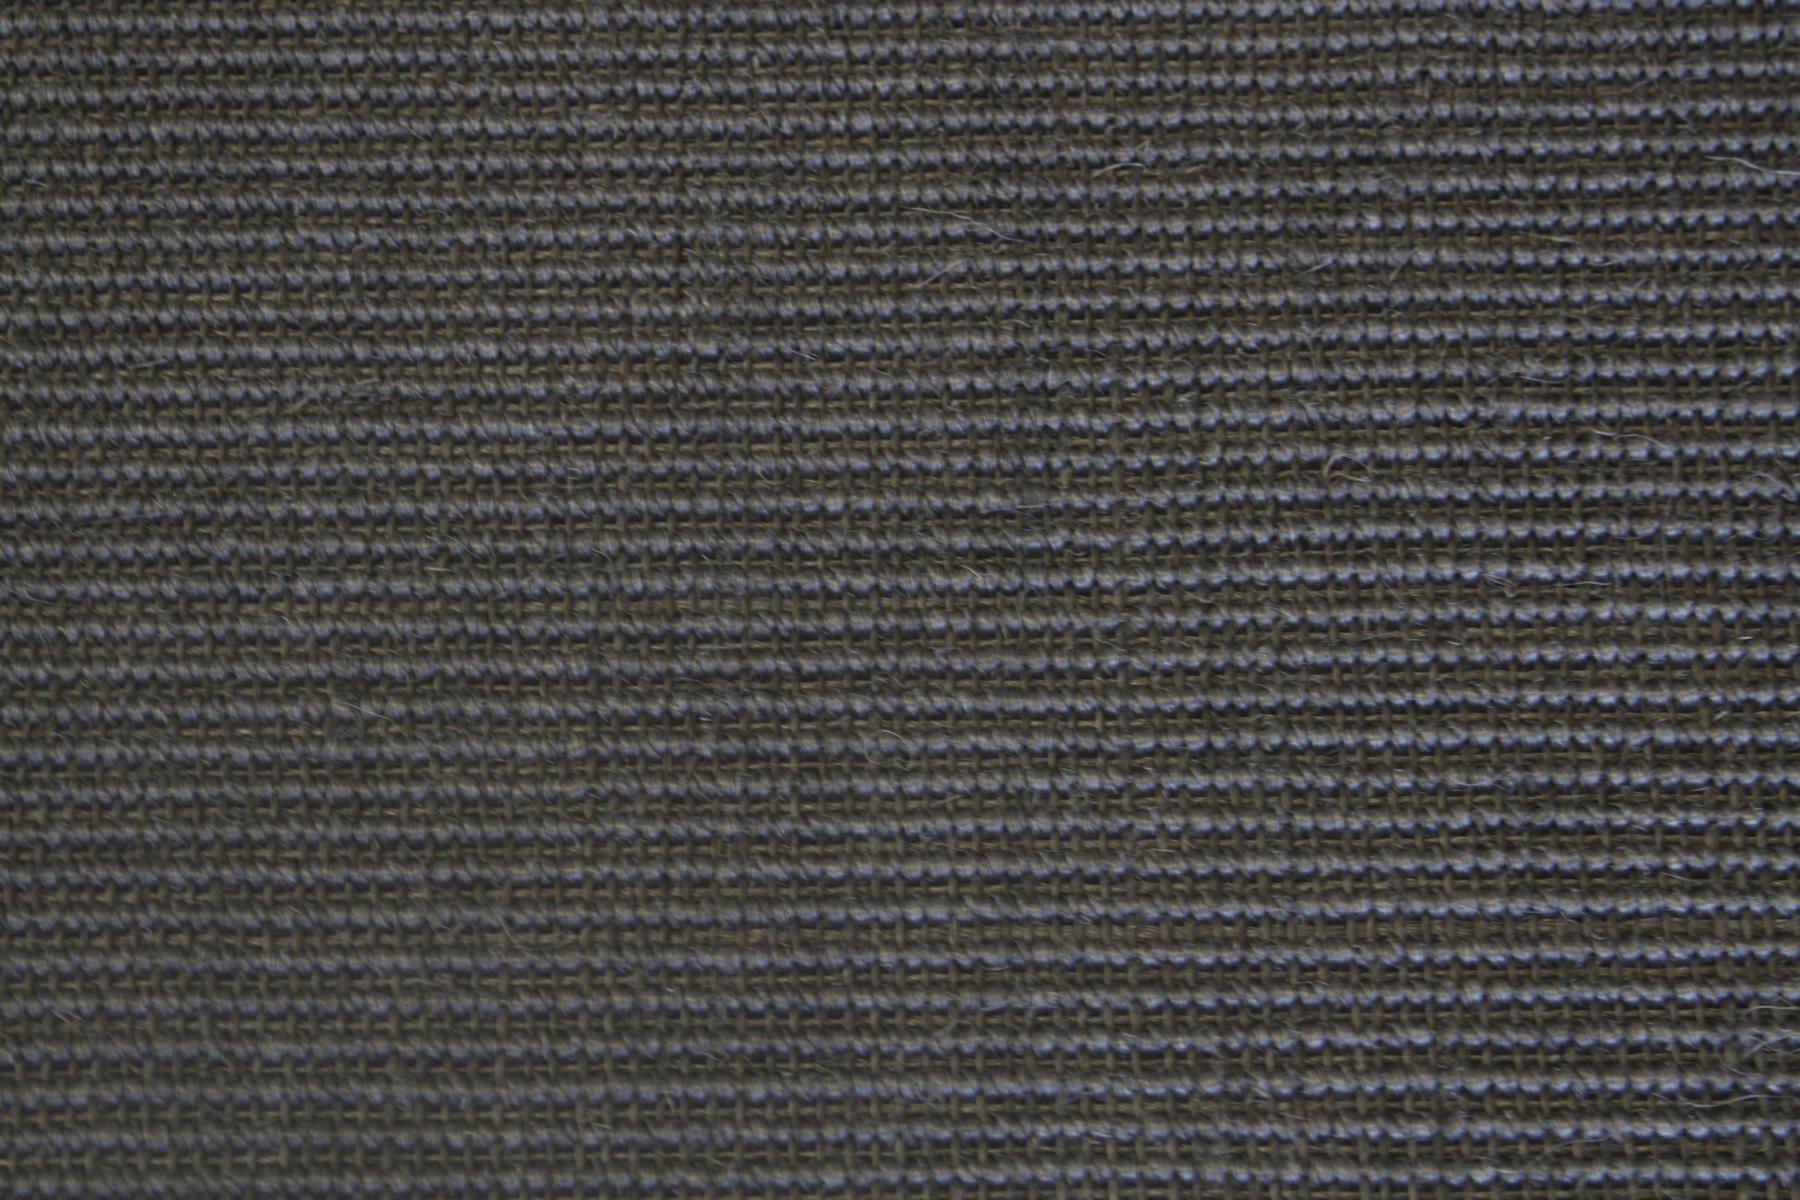 alfombra de sisal rem gris 200x250cm 100 sisal grafito ebay. Black Bedroom Furniture Sets. Home Design Ideas